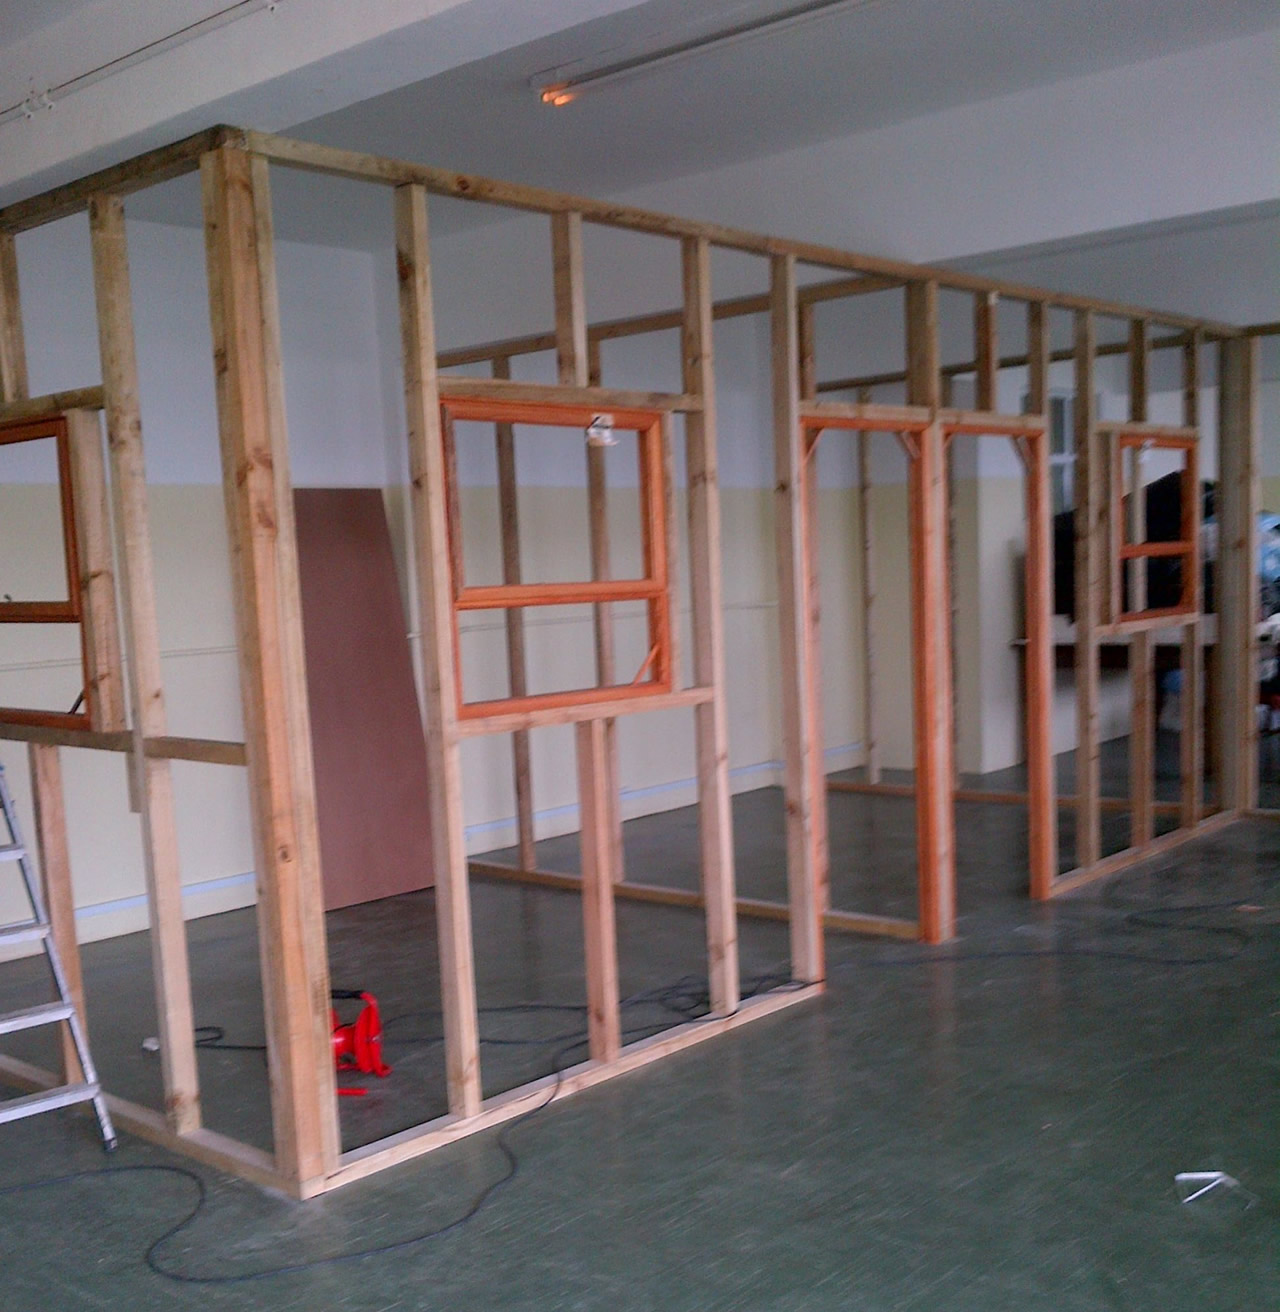 Construction of office space